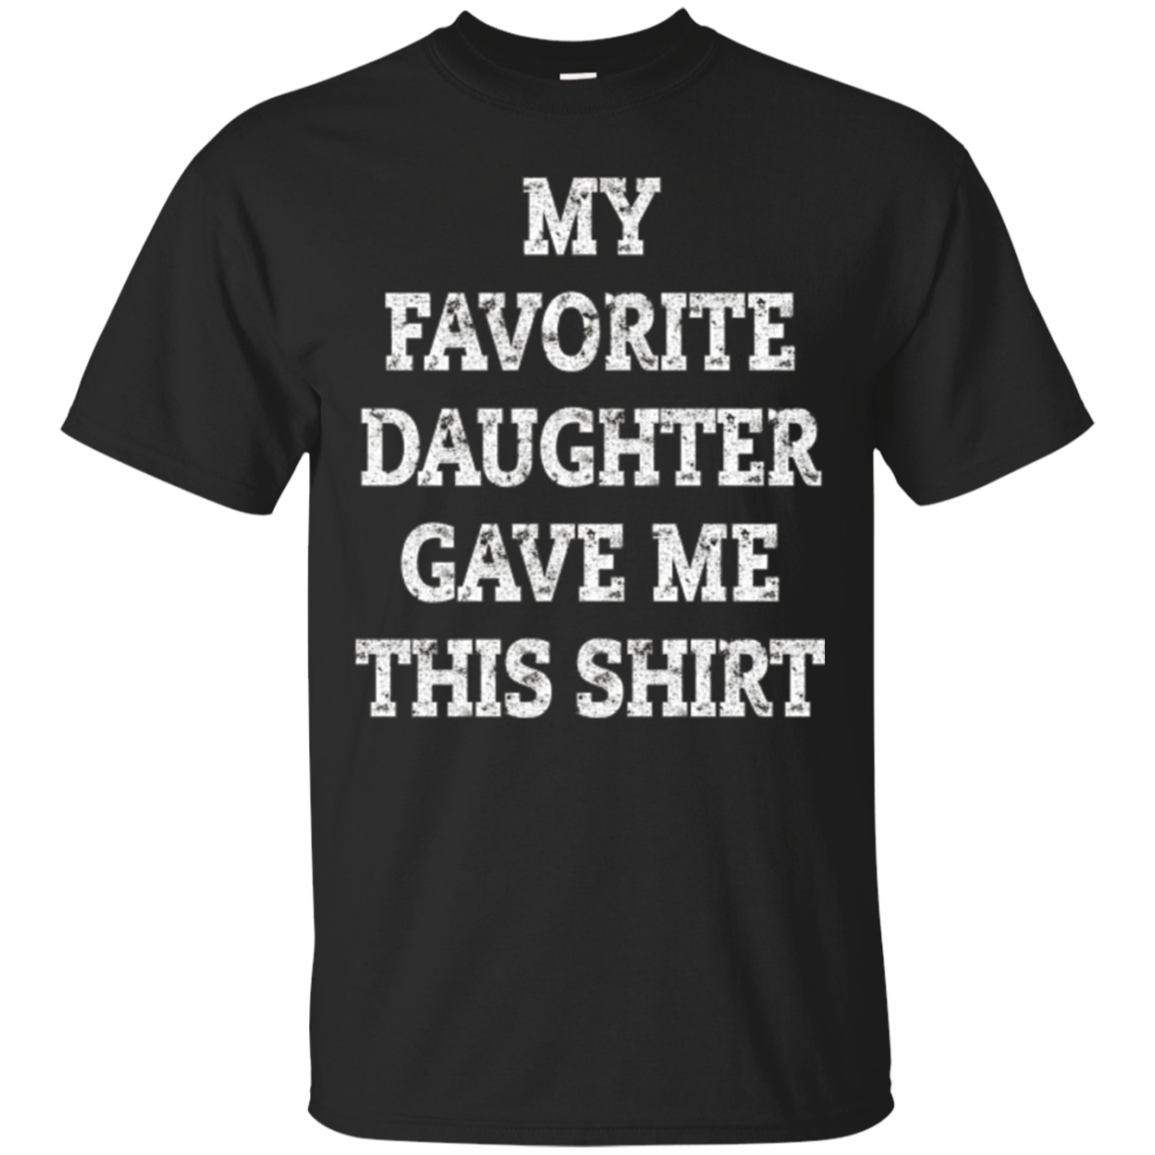 Christmas Gift For Dad From Daughter To Father Bday Gift Tee